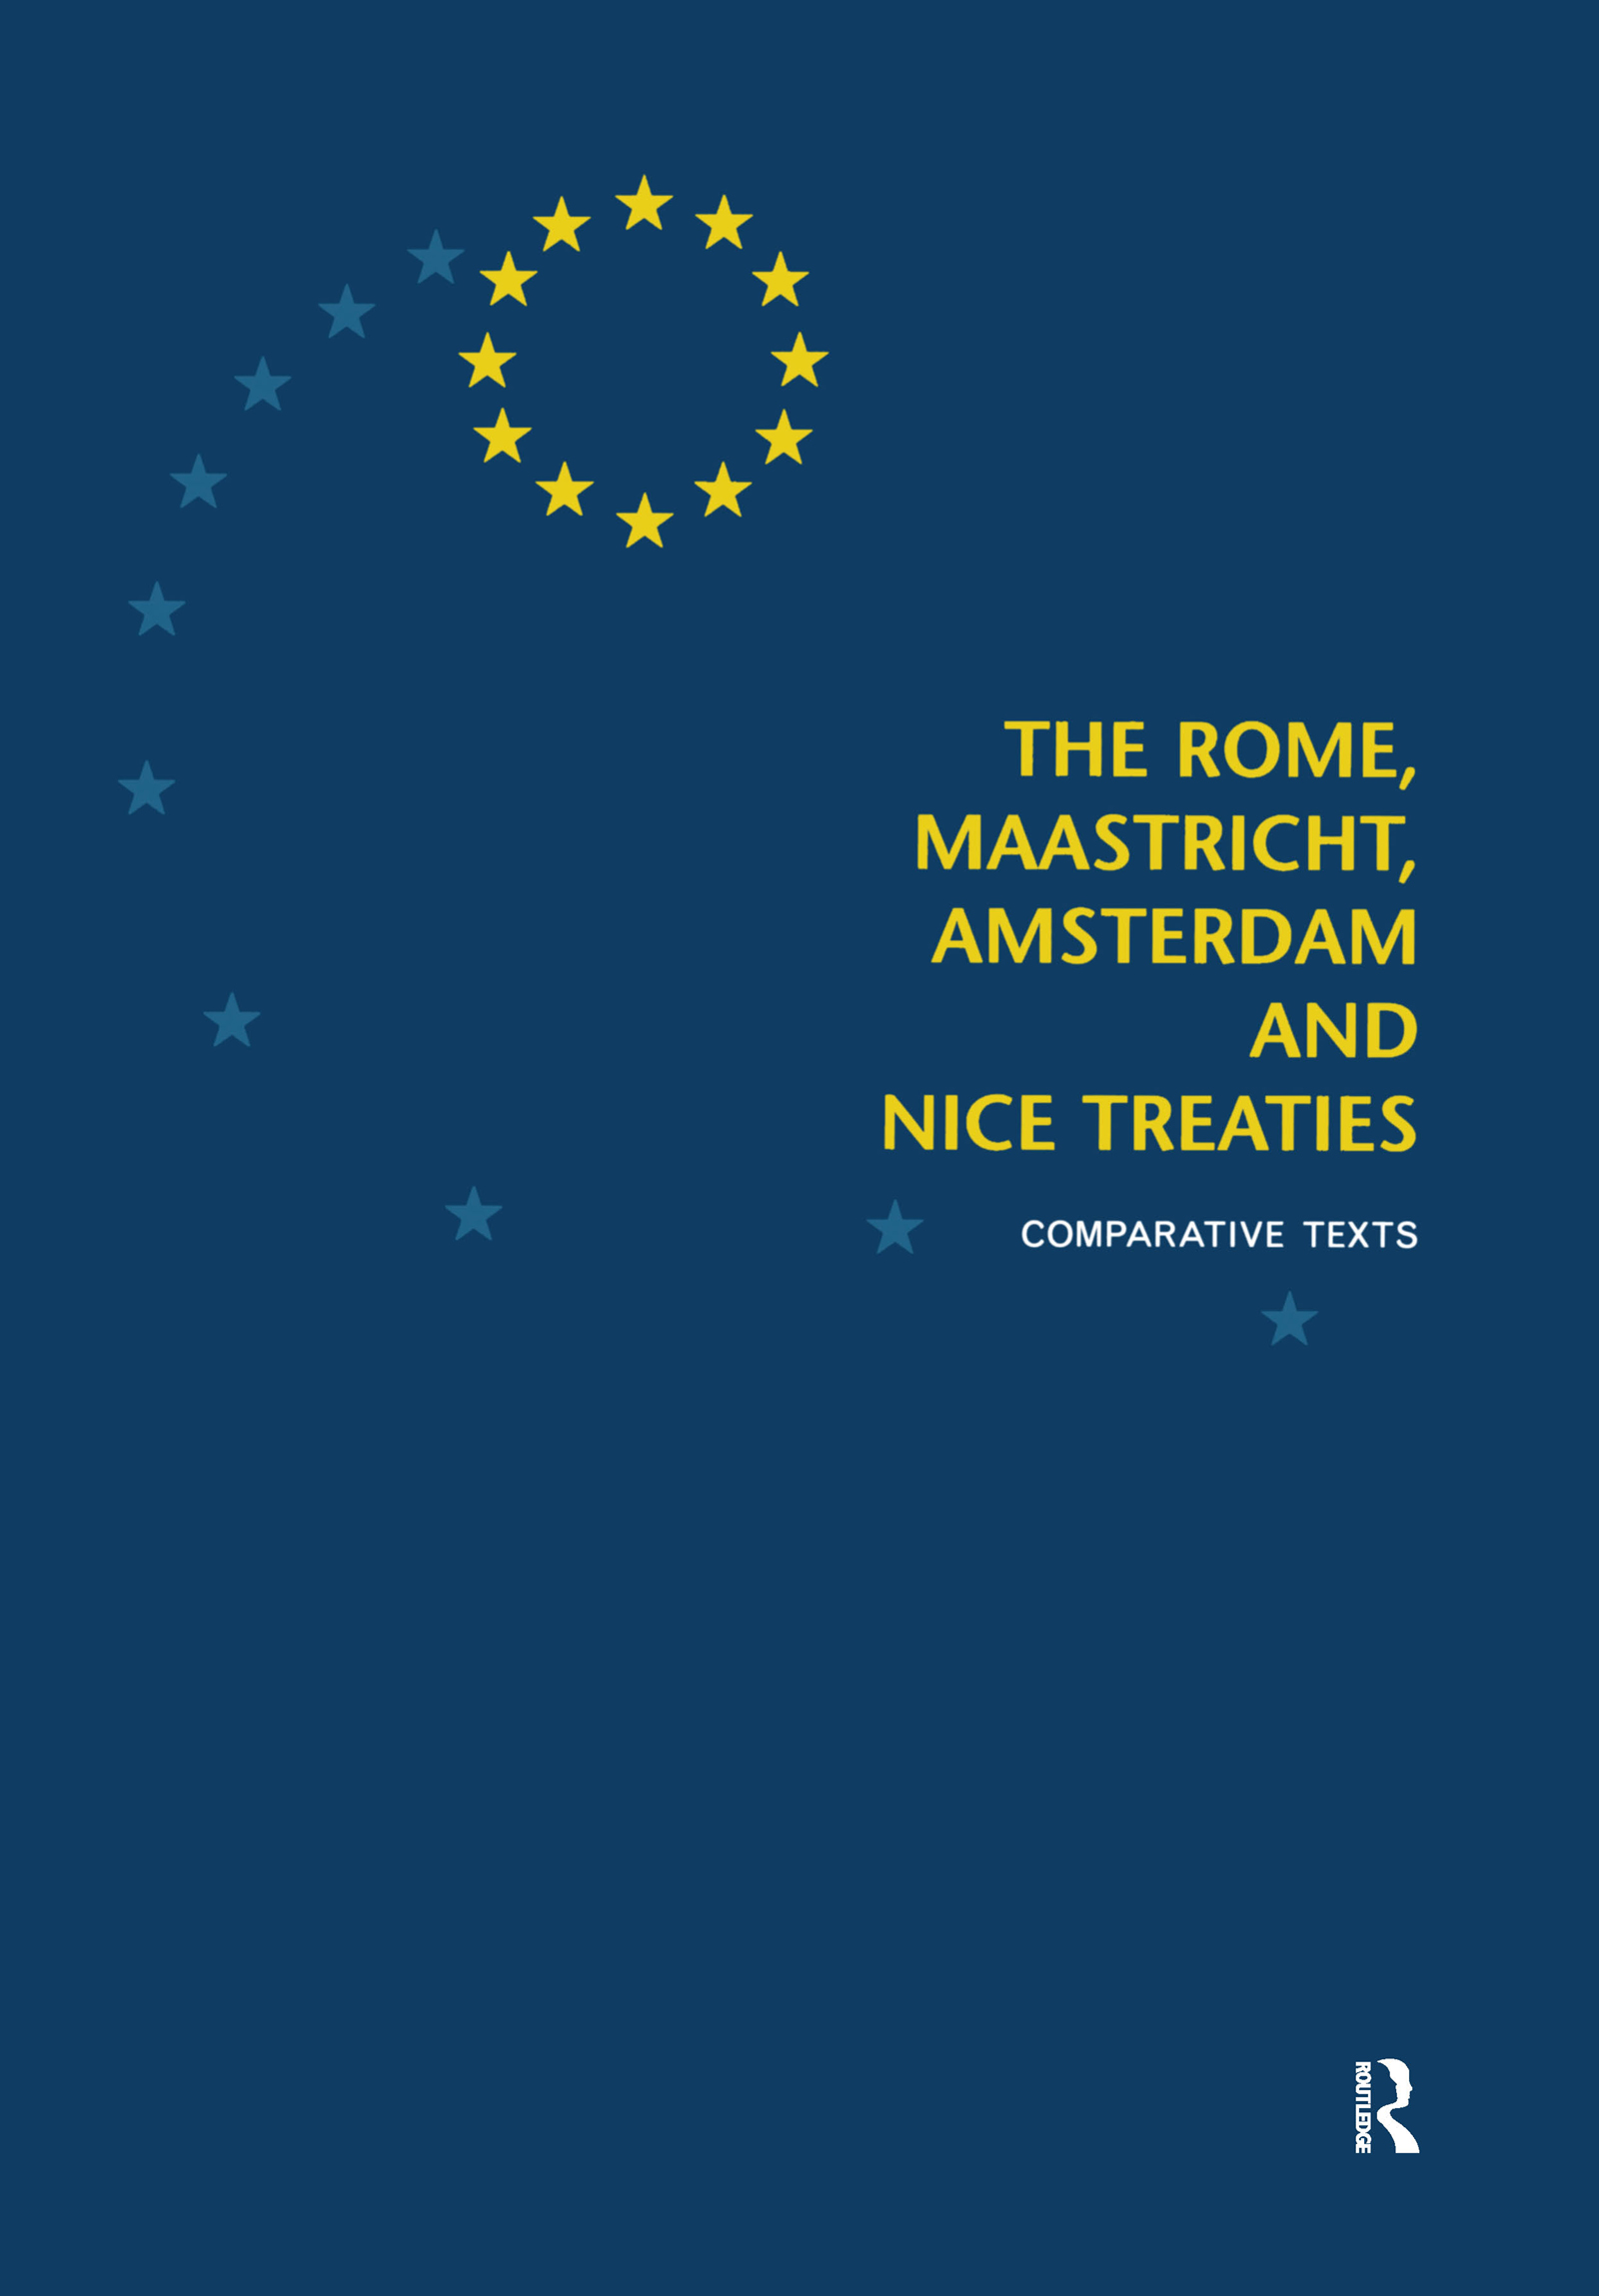 The Rome, Maastricht, Amsterdam and Nice Treaties